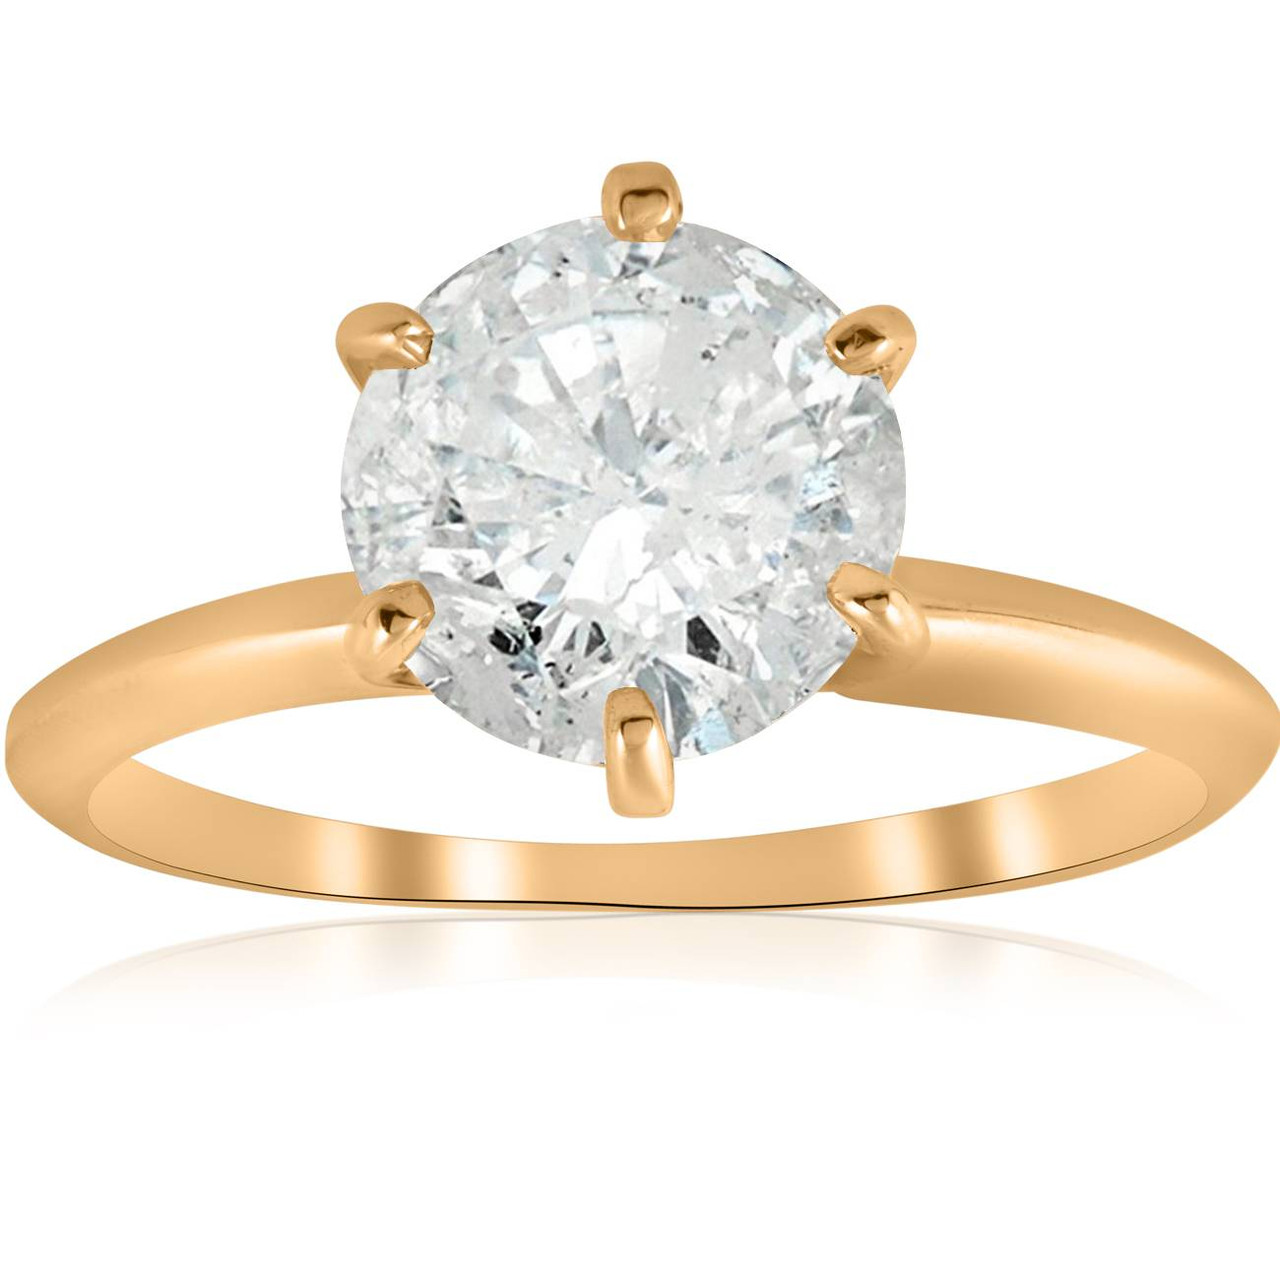 Diamond solitaire 2 Carat Princess Cut Brilliant Solitaire Diamond Ring in Solid 14K Yellow Gold Diamond Engagement Ring 14k Gold Ring